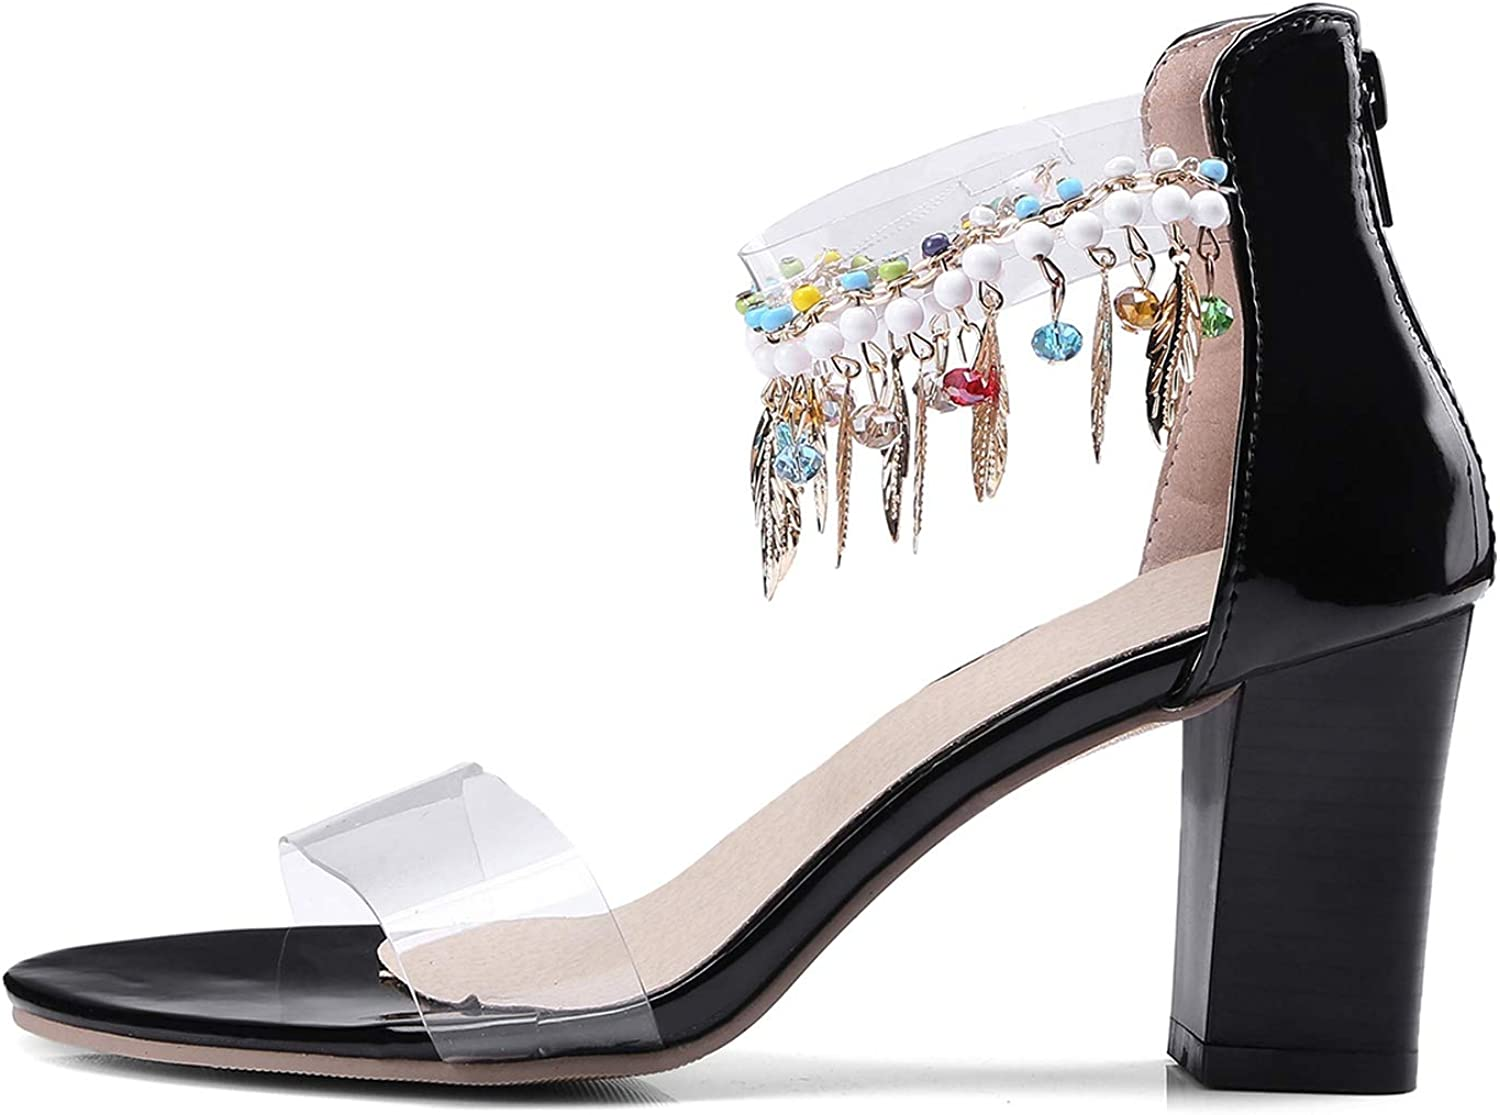 Meet at Summer-heeled samndals High Heels Sandals Concise Solid PVC Open Toe Sexy Women's Party Sandal